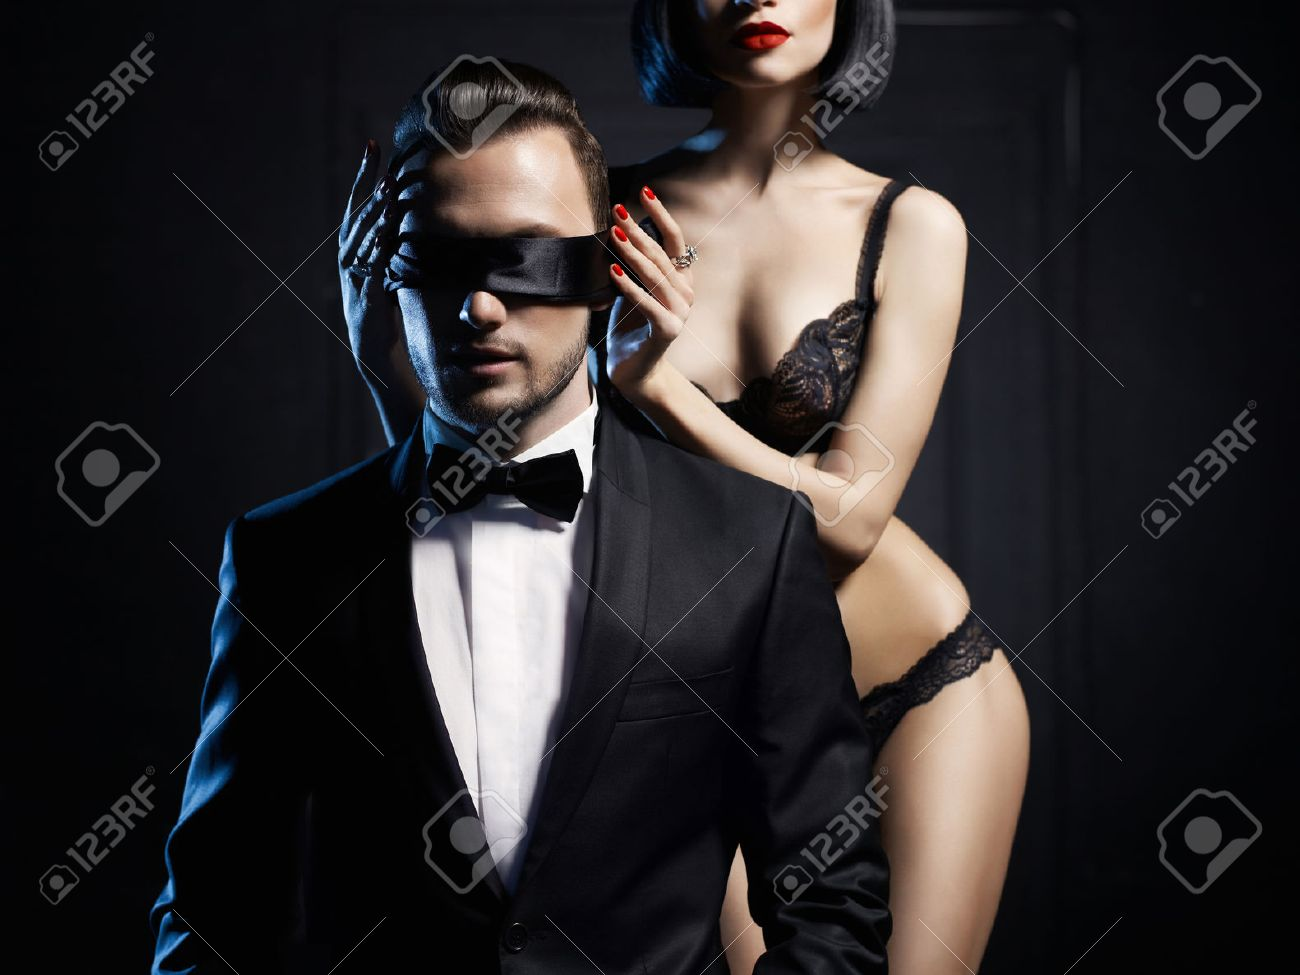 Fashion studio photo of a sensual couple in lingerie and a tuxedo Standard-Bild - 36812068